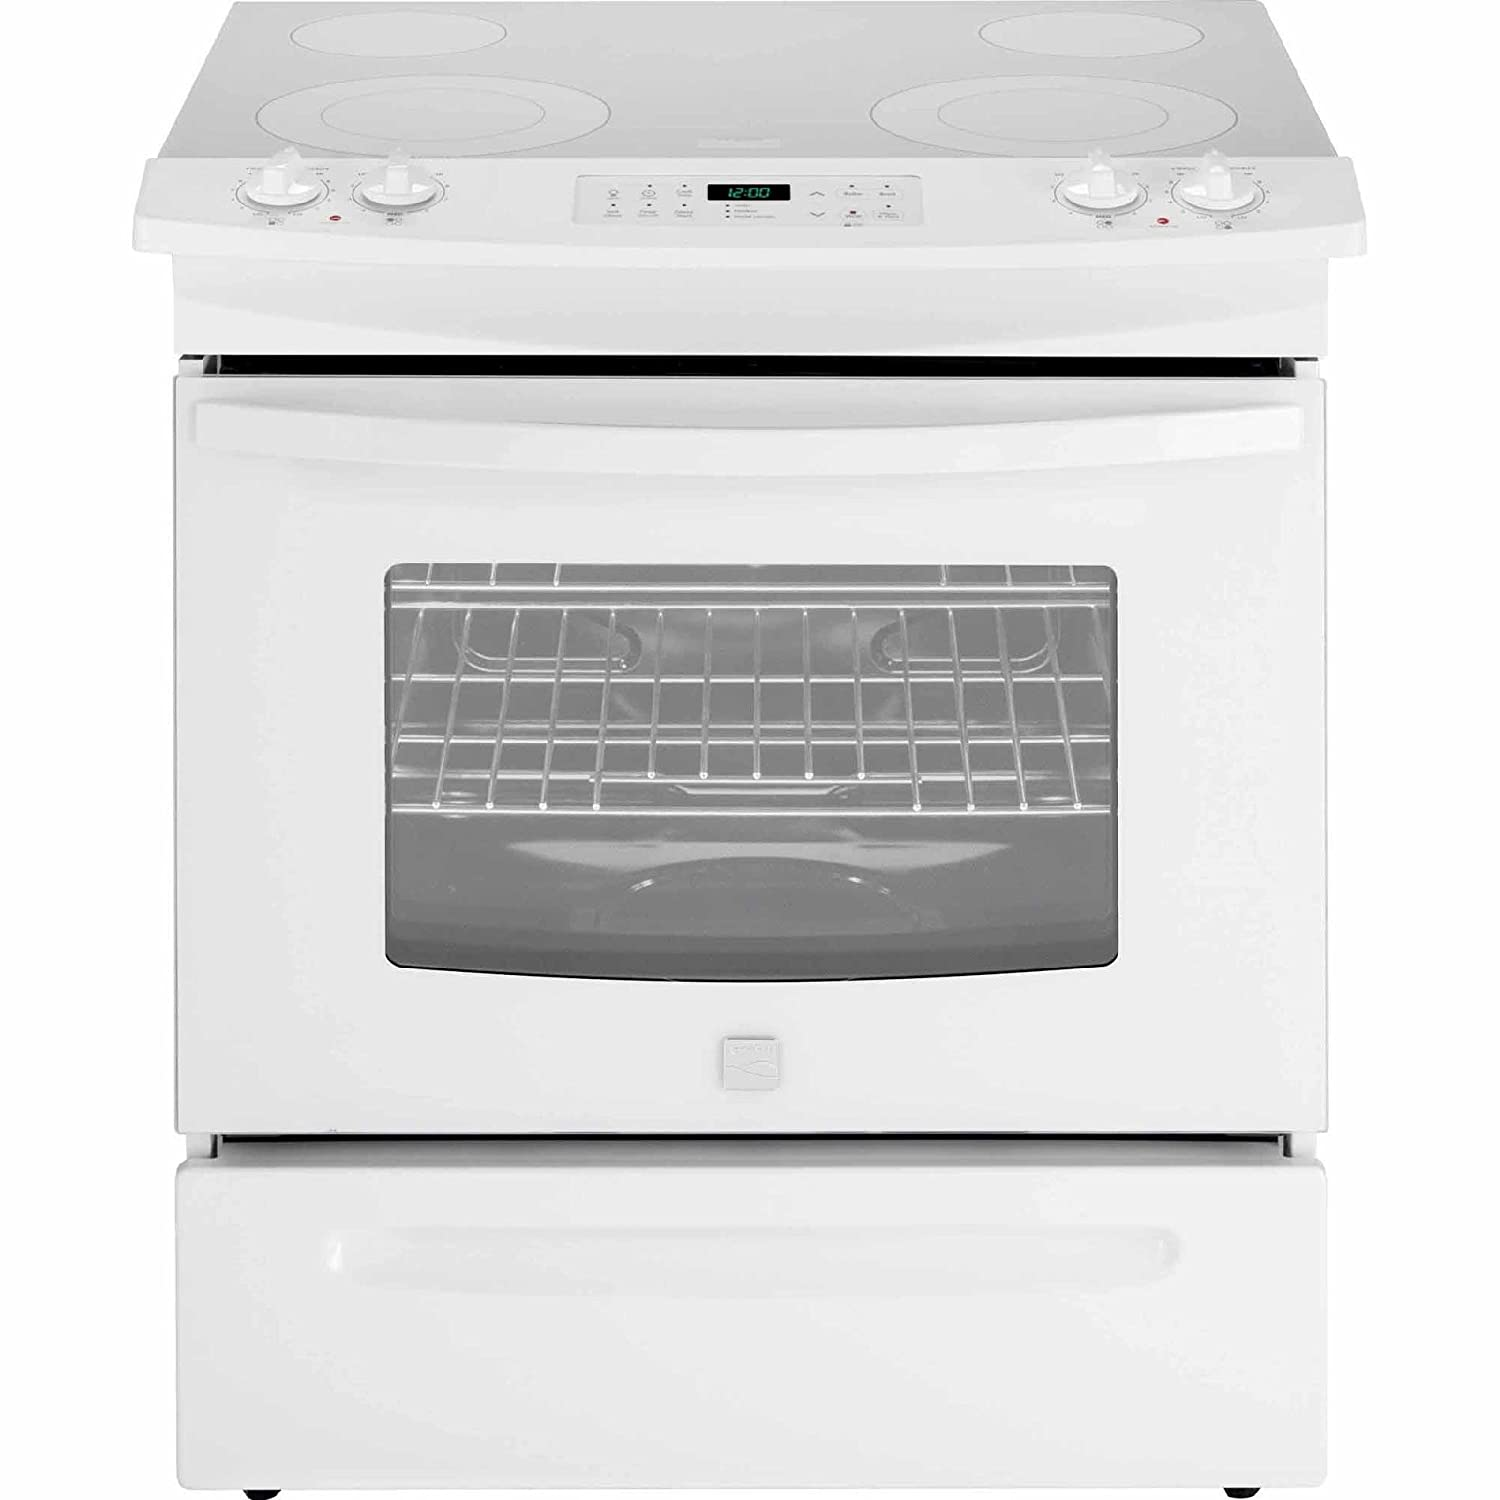 Kenmore 42532 4.6 cu. ft. Self Clean Electric Slide-in Range in White, includes delivery and hookup Sears Brands Management Corporation (Kenmore) 02242532